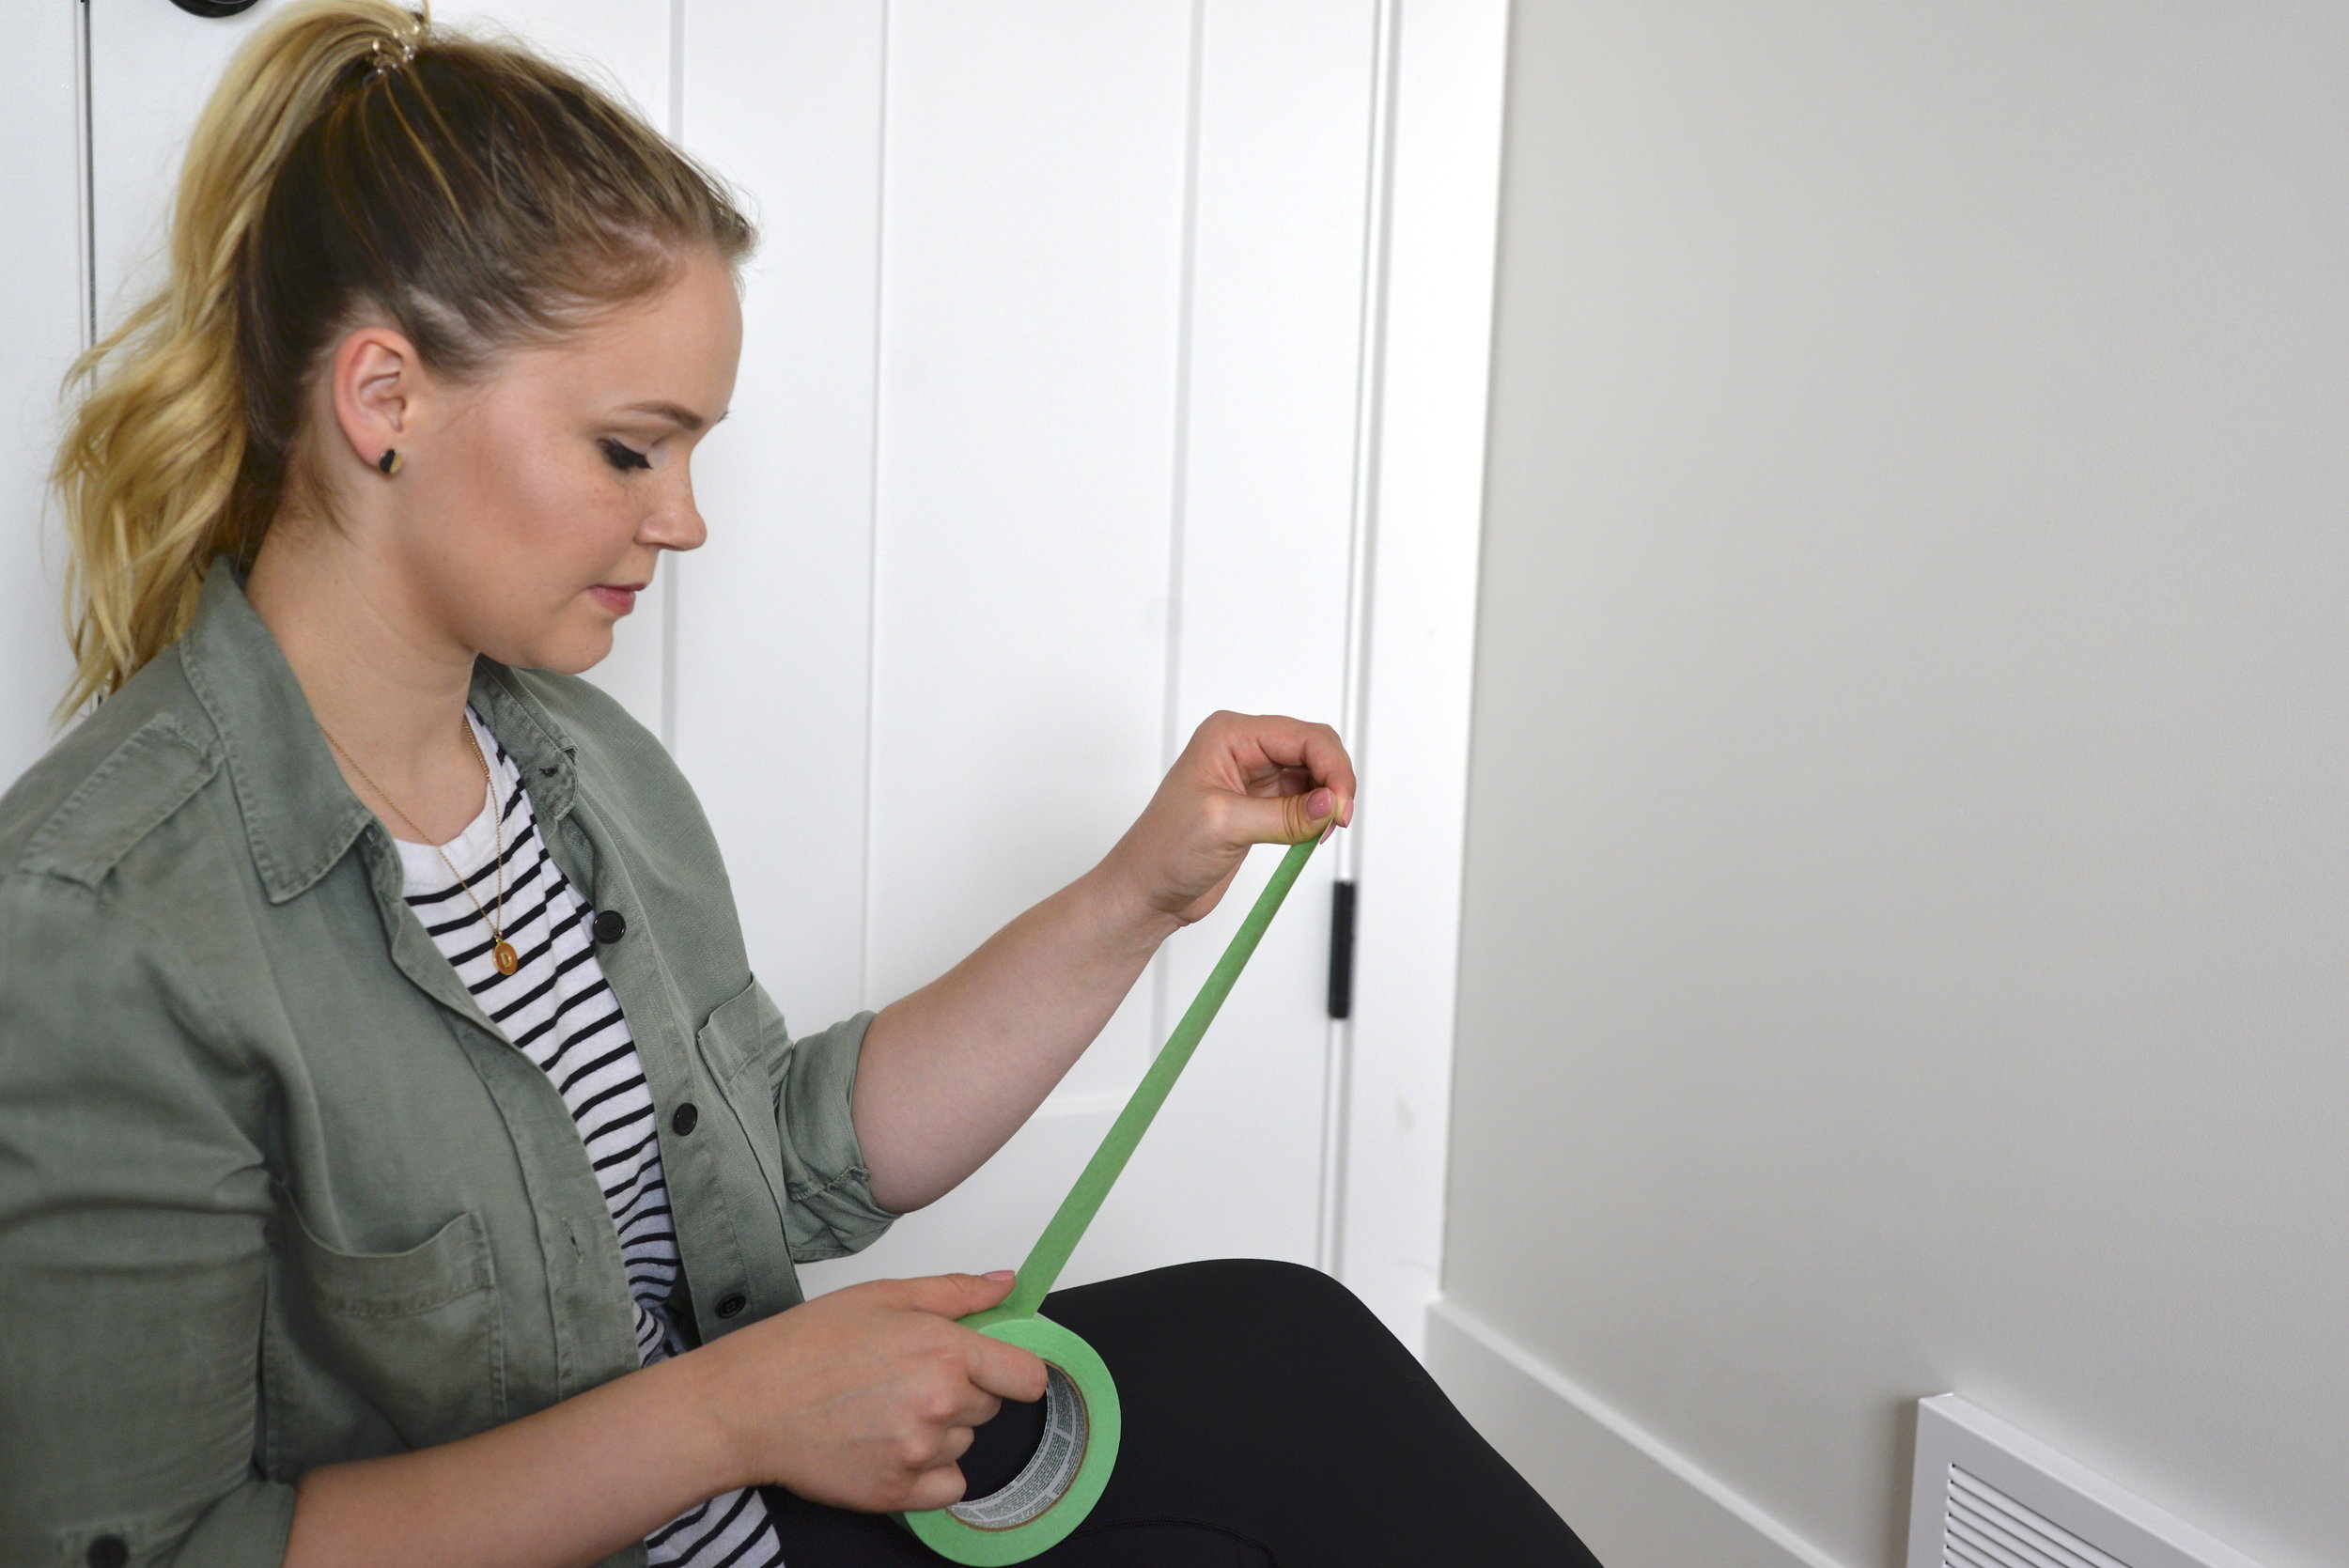 steps to properly paint your room